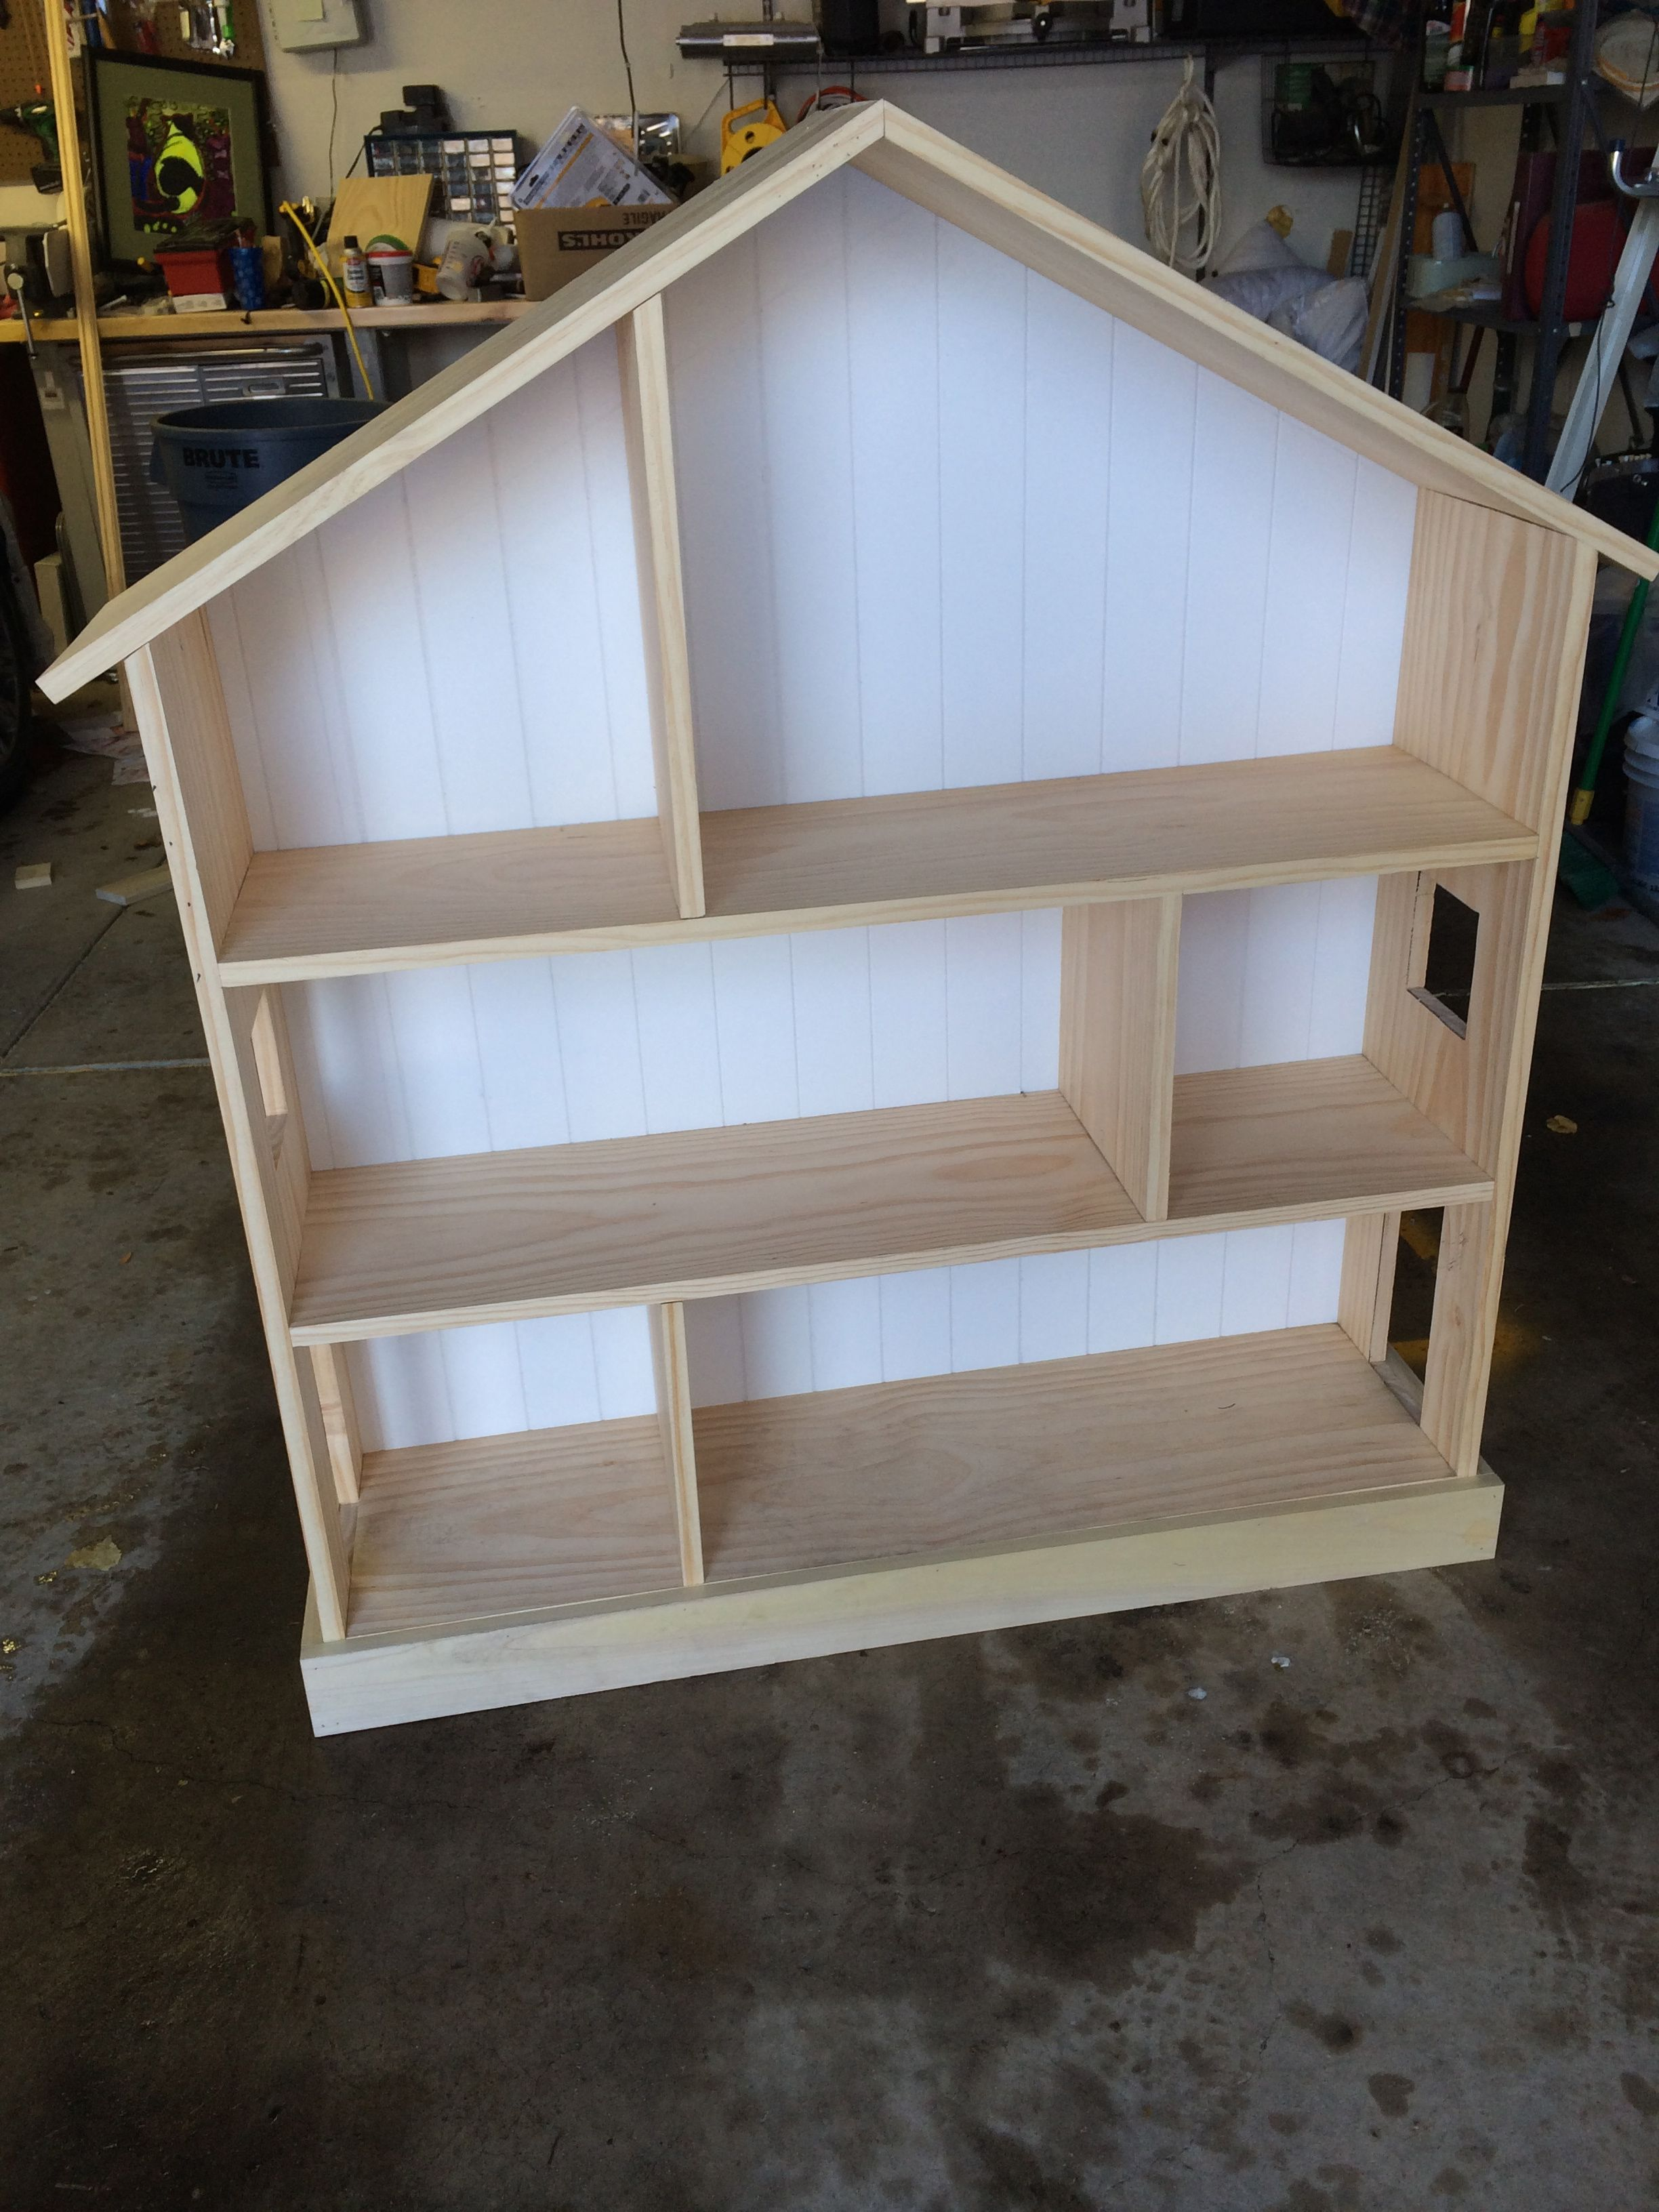 Cutest Dollhouse Bookcase To Build Yourself I Can Teach My Child Doll House Plans Dollhouse Bookcase Dollhouse Woodworking Plans